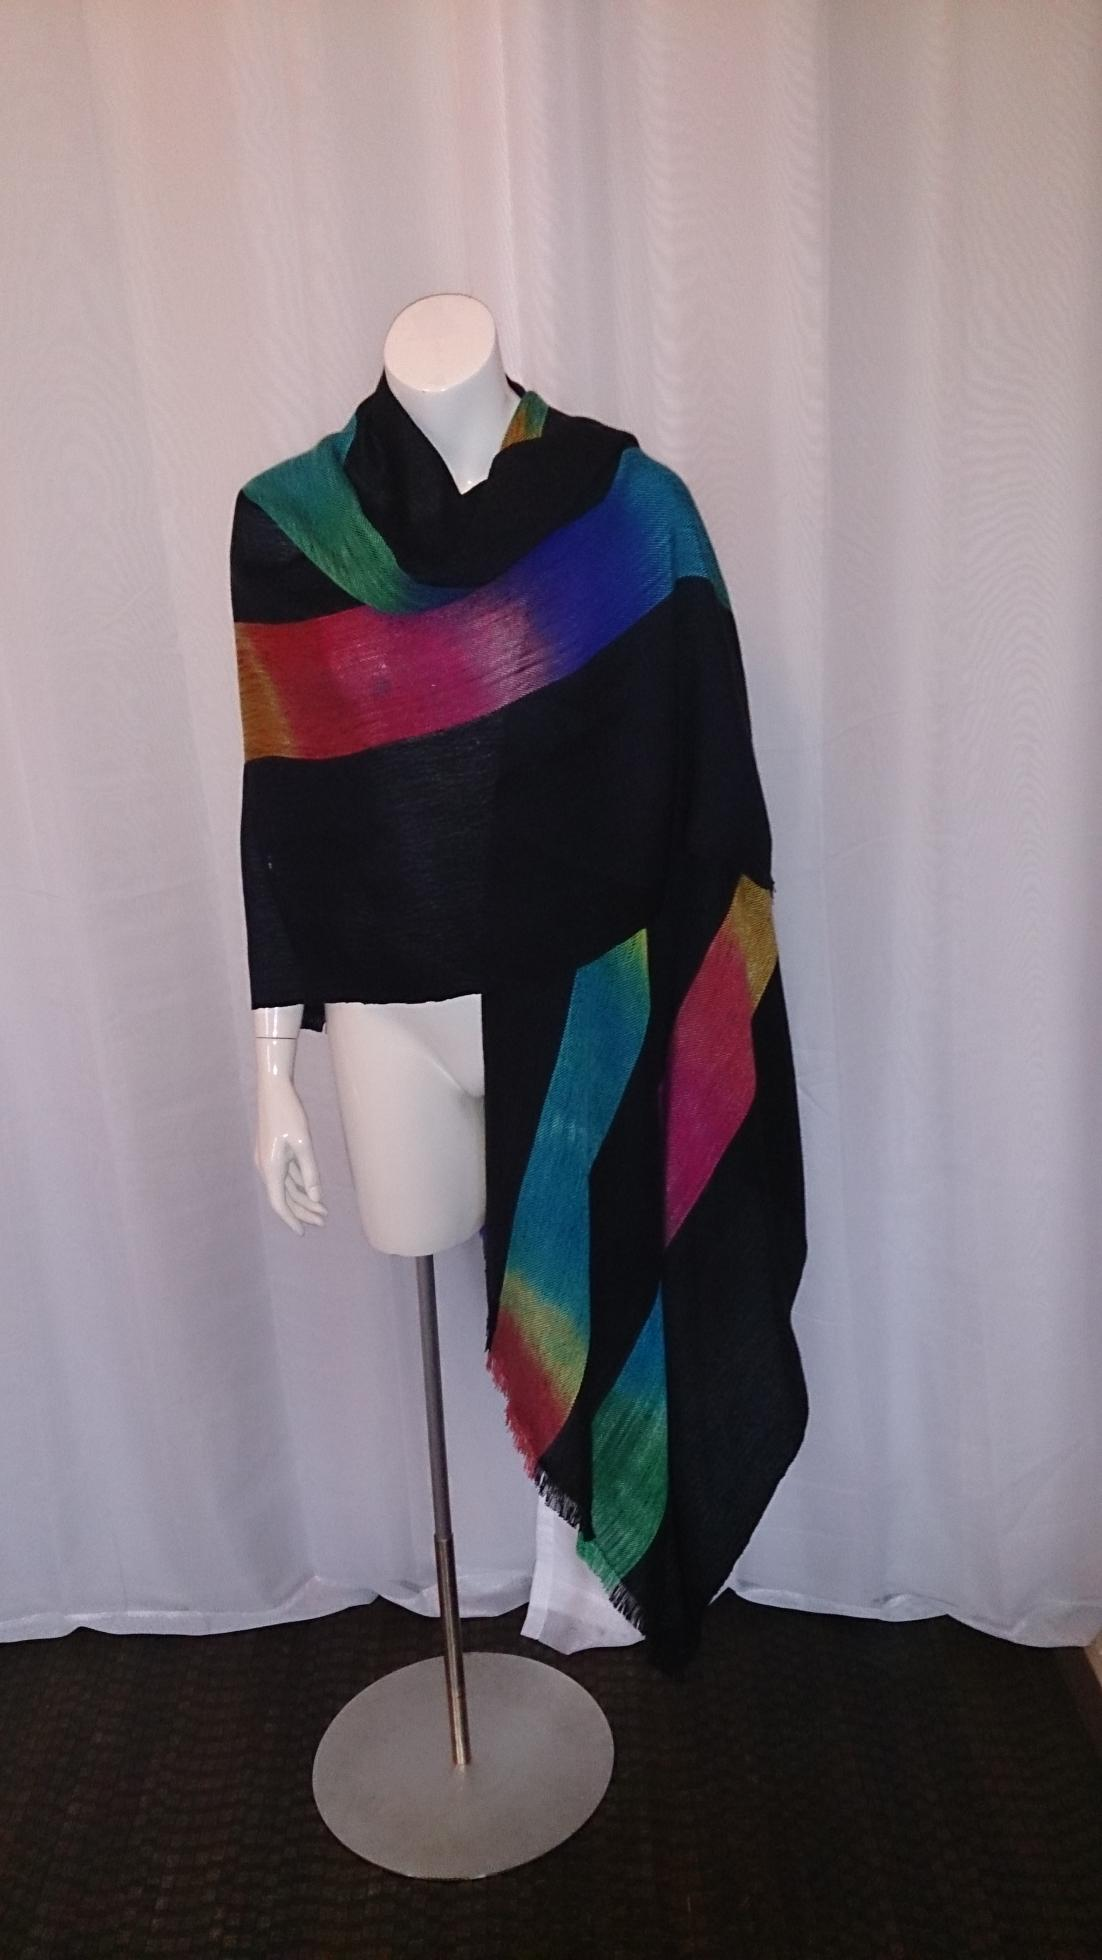 2015-05-30 Weaving Cape Black and Colourful